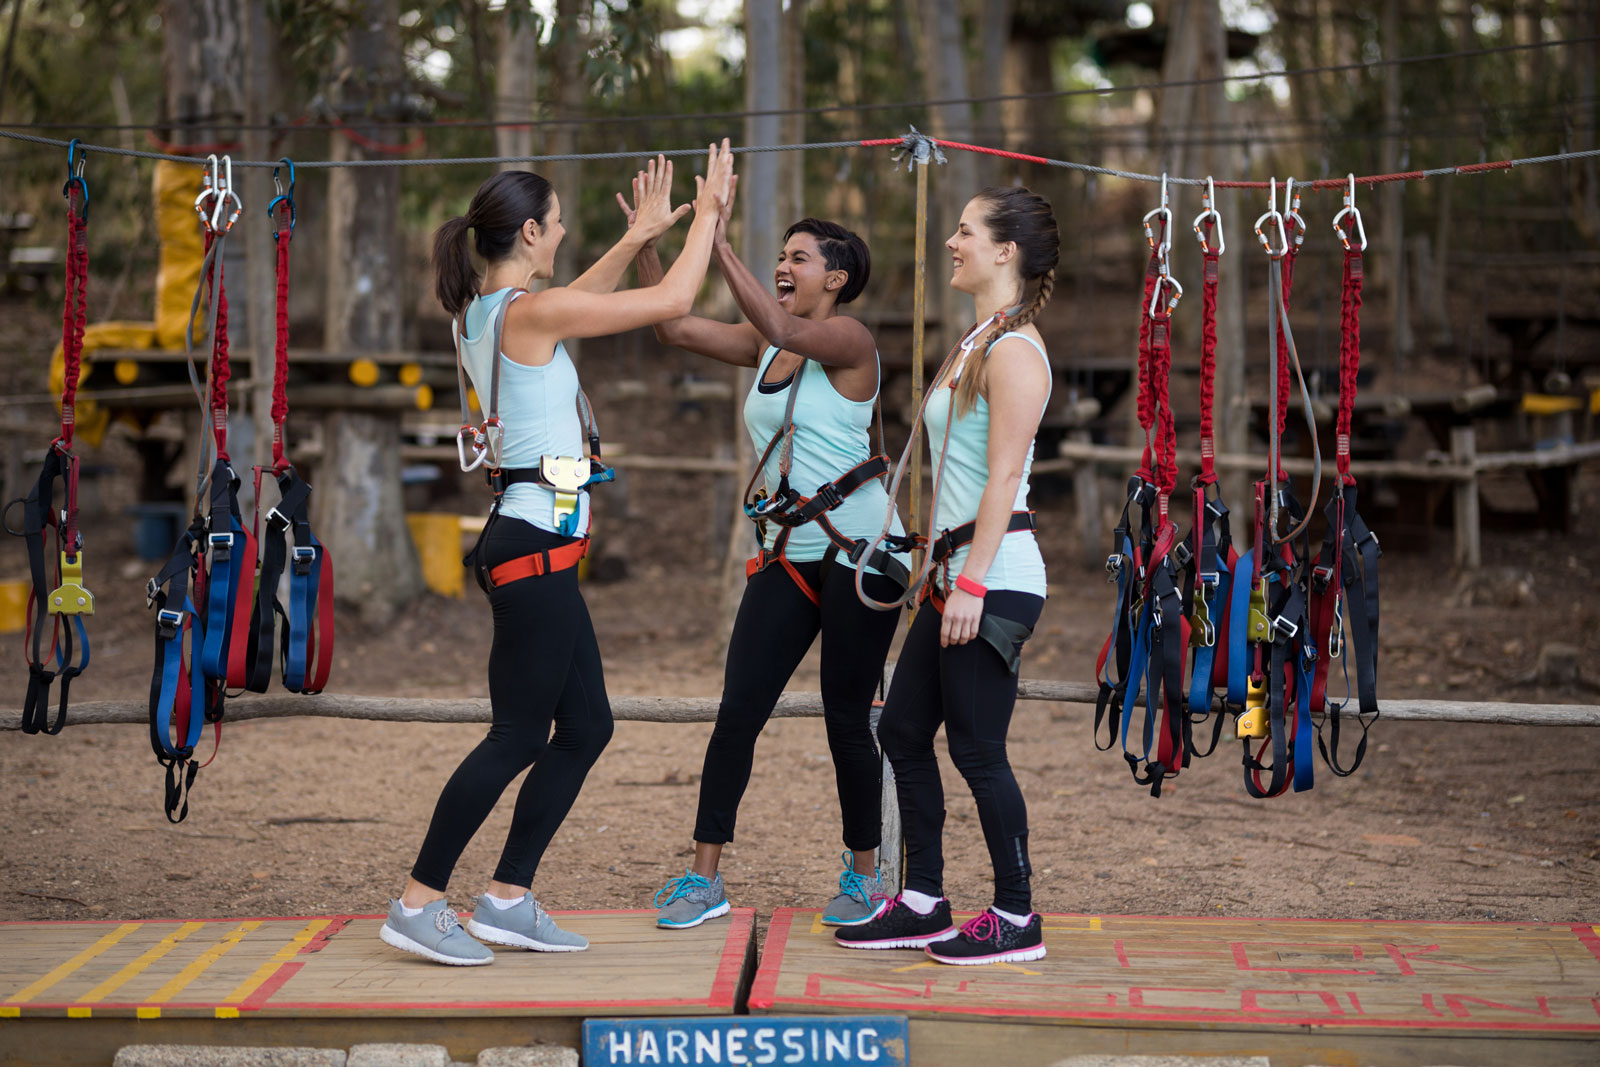 Looking for an Exciting Group Activity? Consider Zip Lining